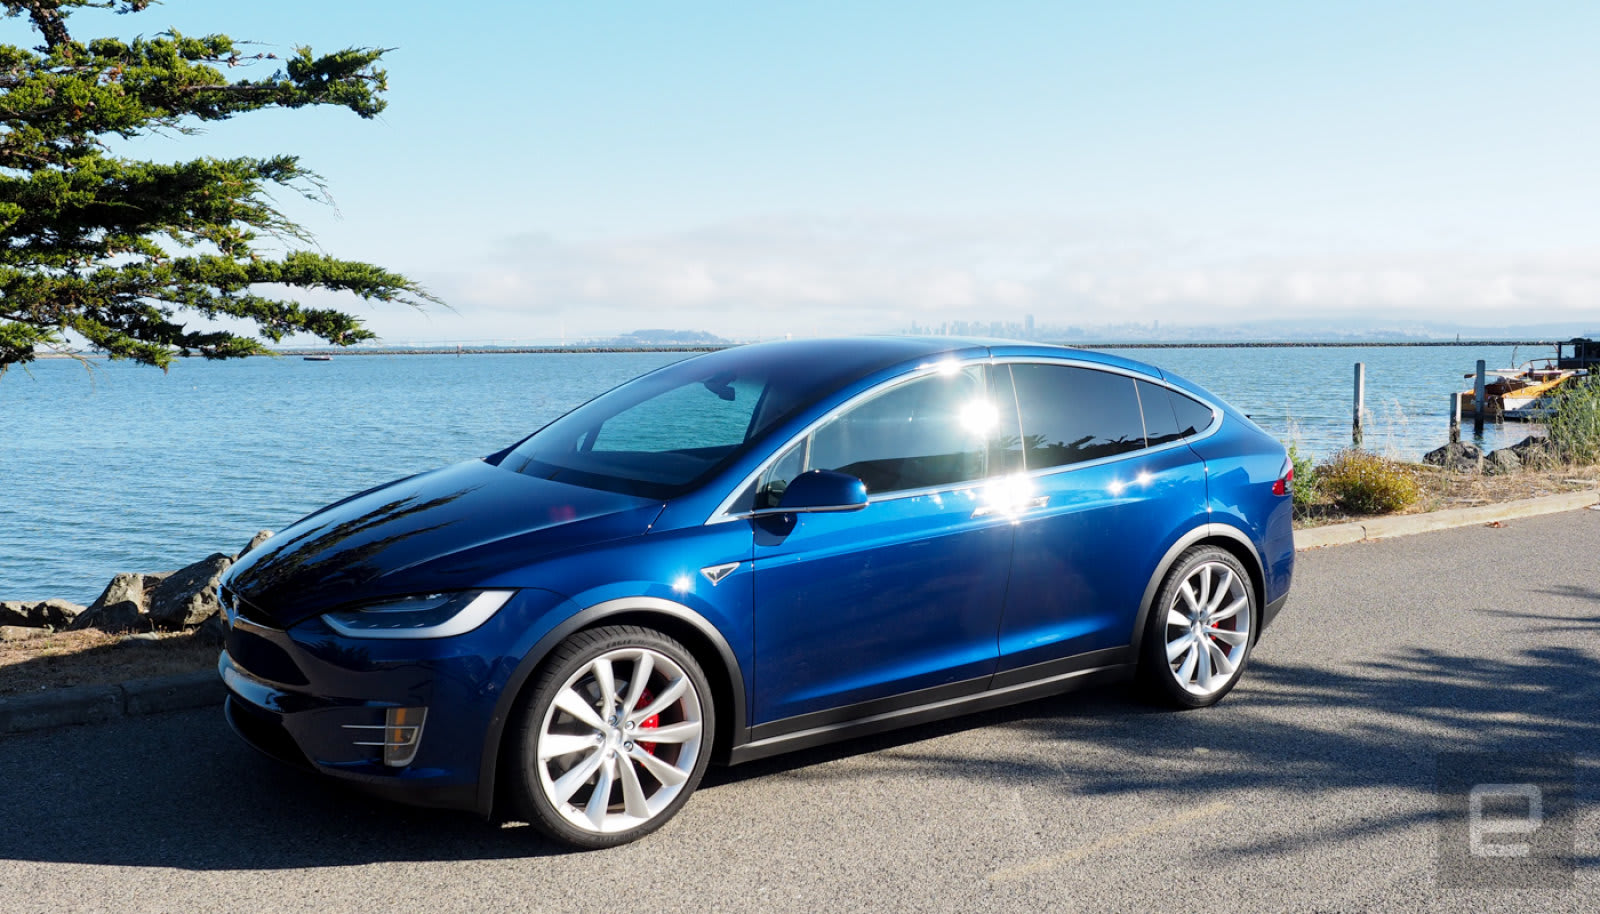 Tesla Has Dropped Hints That It S Ready To Extend The Range Of Its Electric Cars There Was An Allusion A P100d Hidden In Firmware But Now Looks